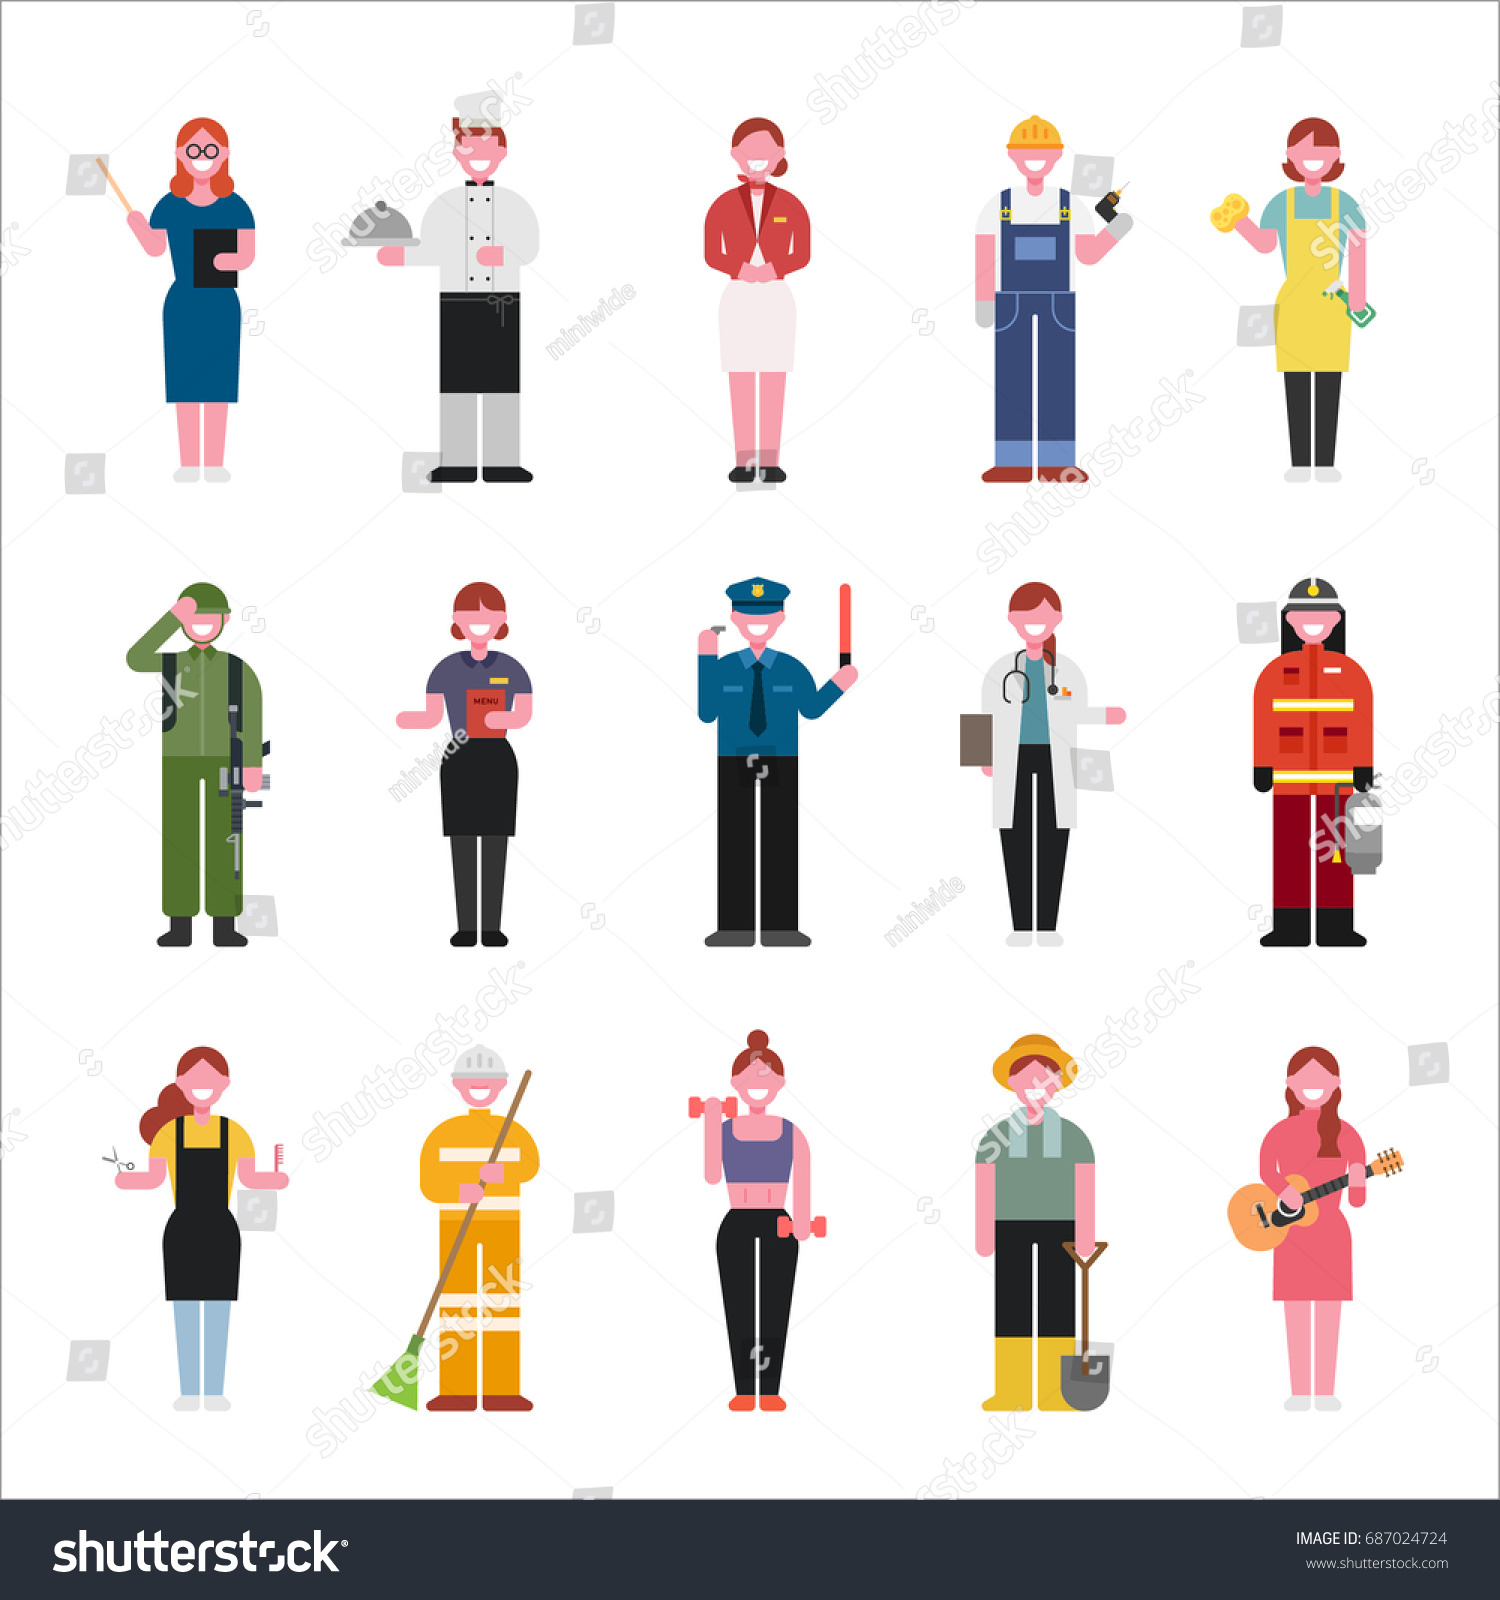 Character Design Job Offer : Job character vector illustration flat design stock